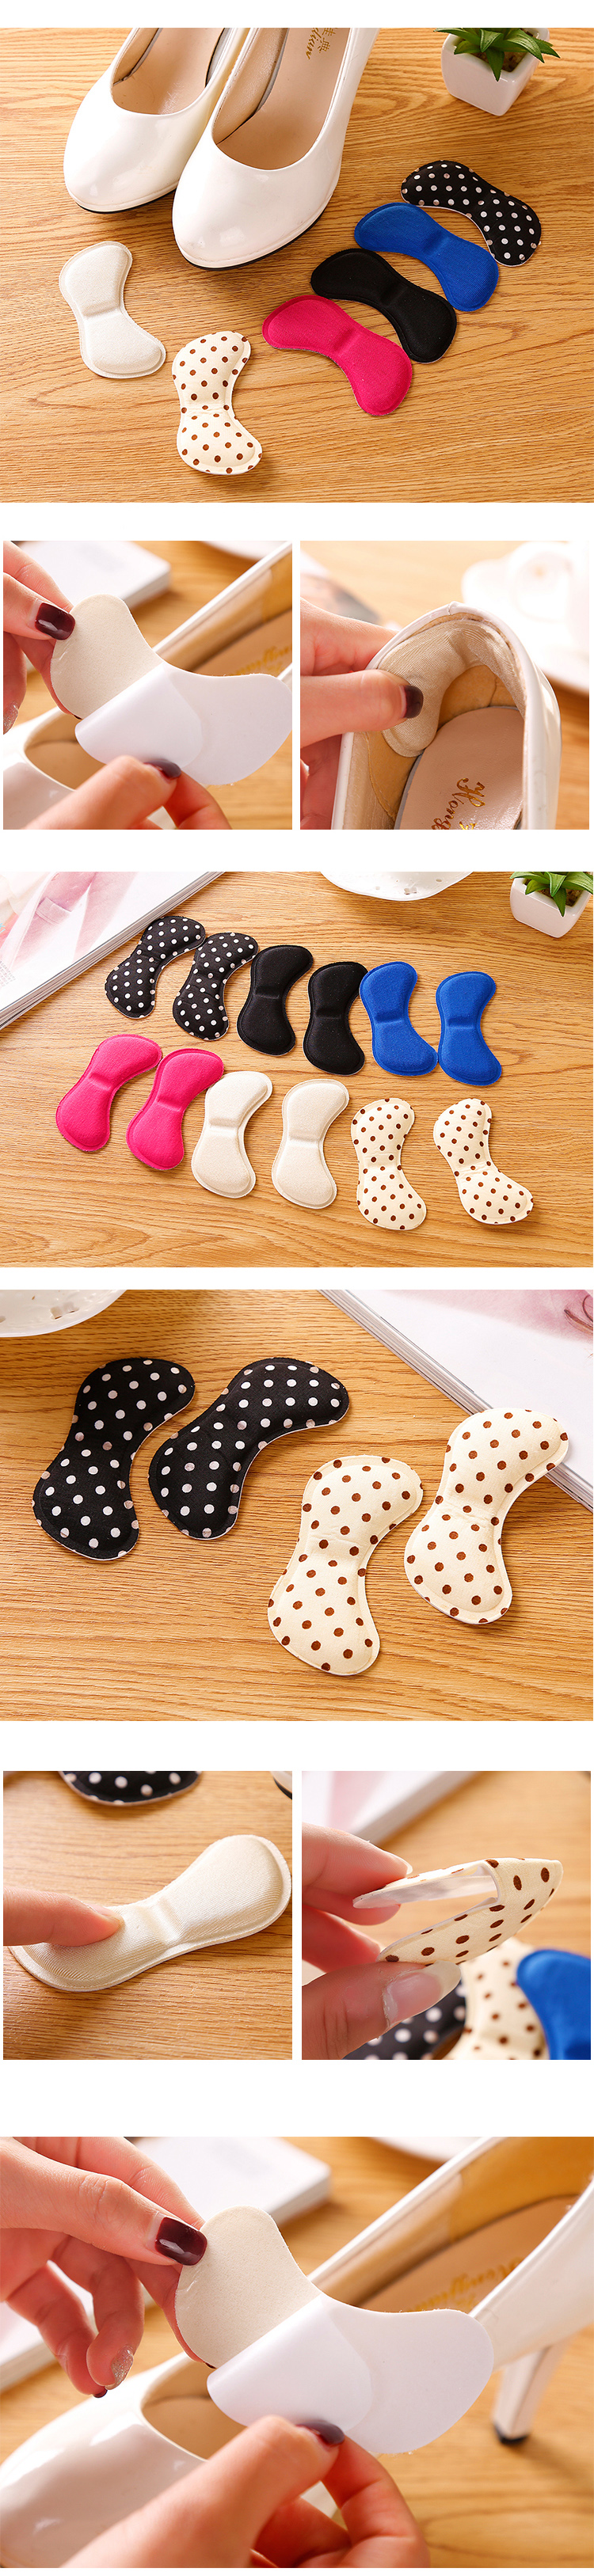 Soft Foam Half Soles Insoles Shoes Back Inserts Heel Liner Cushion Protector Foot Care Shoe Pads Grips Stickers (8)